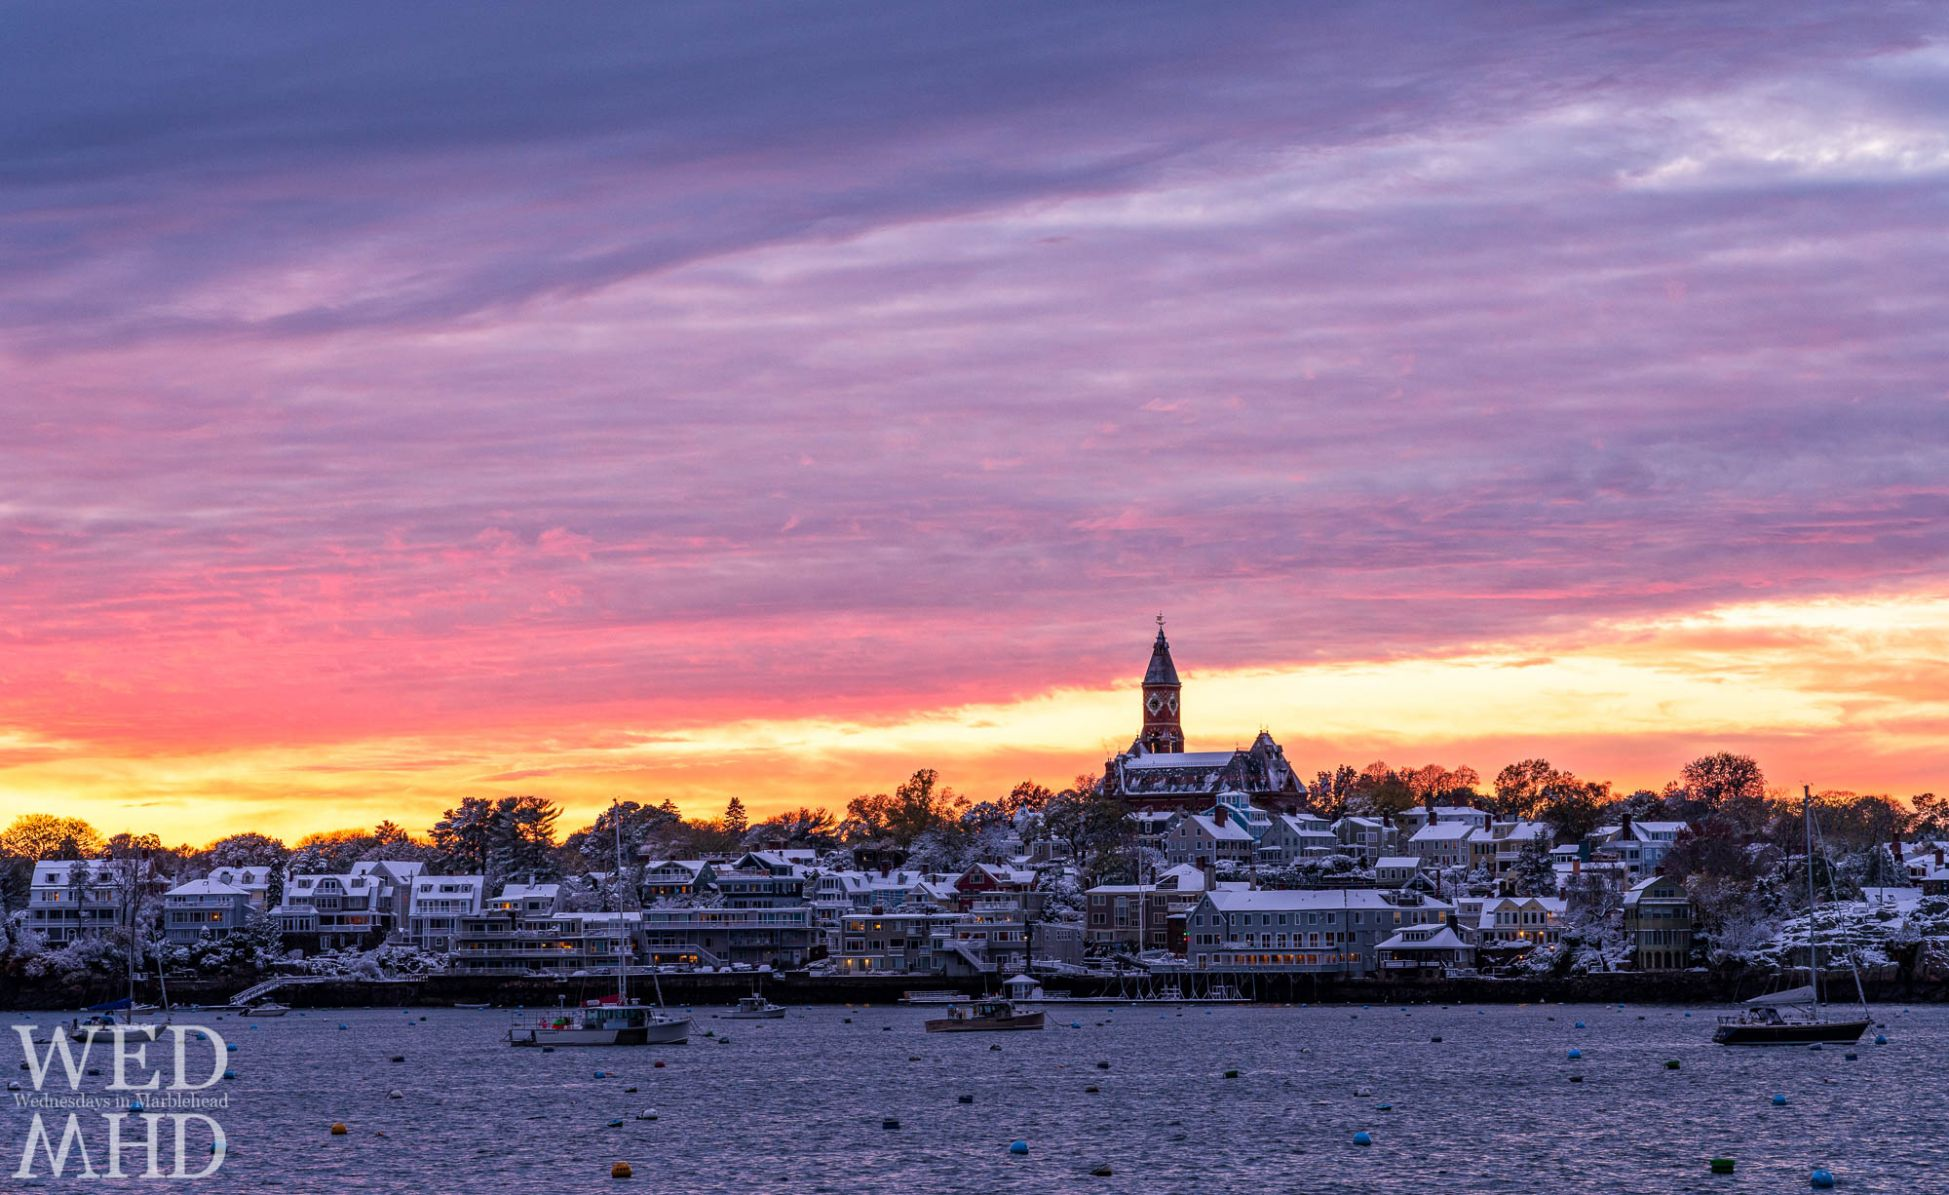 Sunset light reflects off the first snow of the season that fell on October 30th in Marblehead